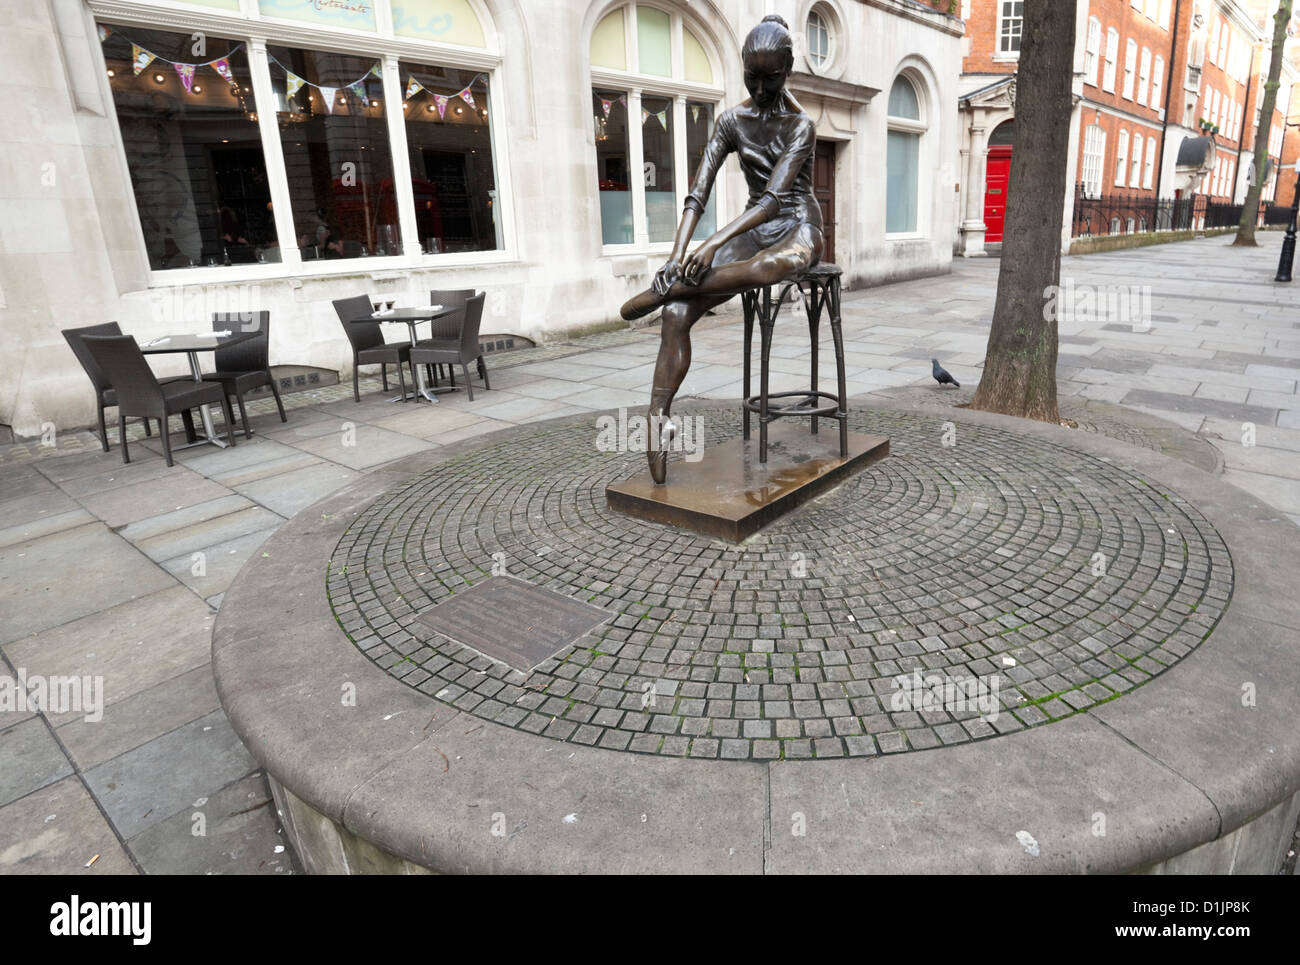 Young Dancer bronze statue by Enzo Plazzotta, Broad Court, Covent Garden, London, England, UK - Stock Image